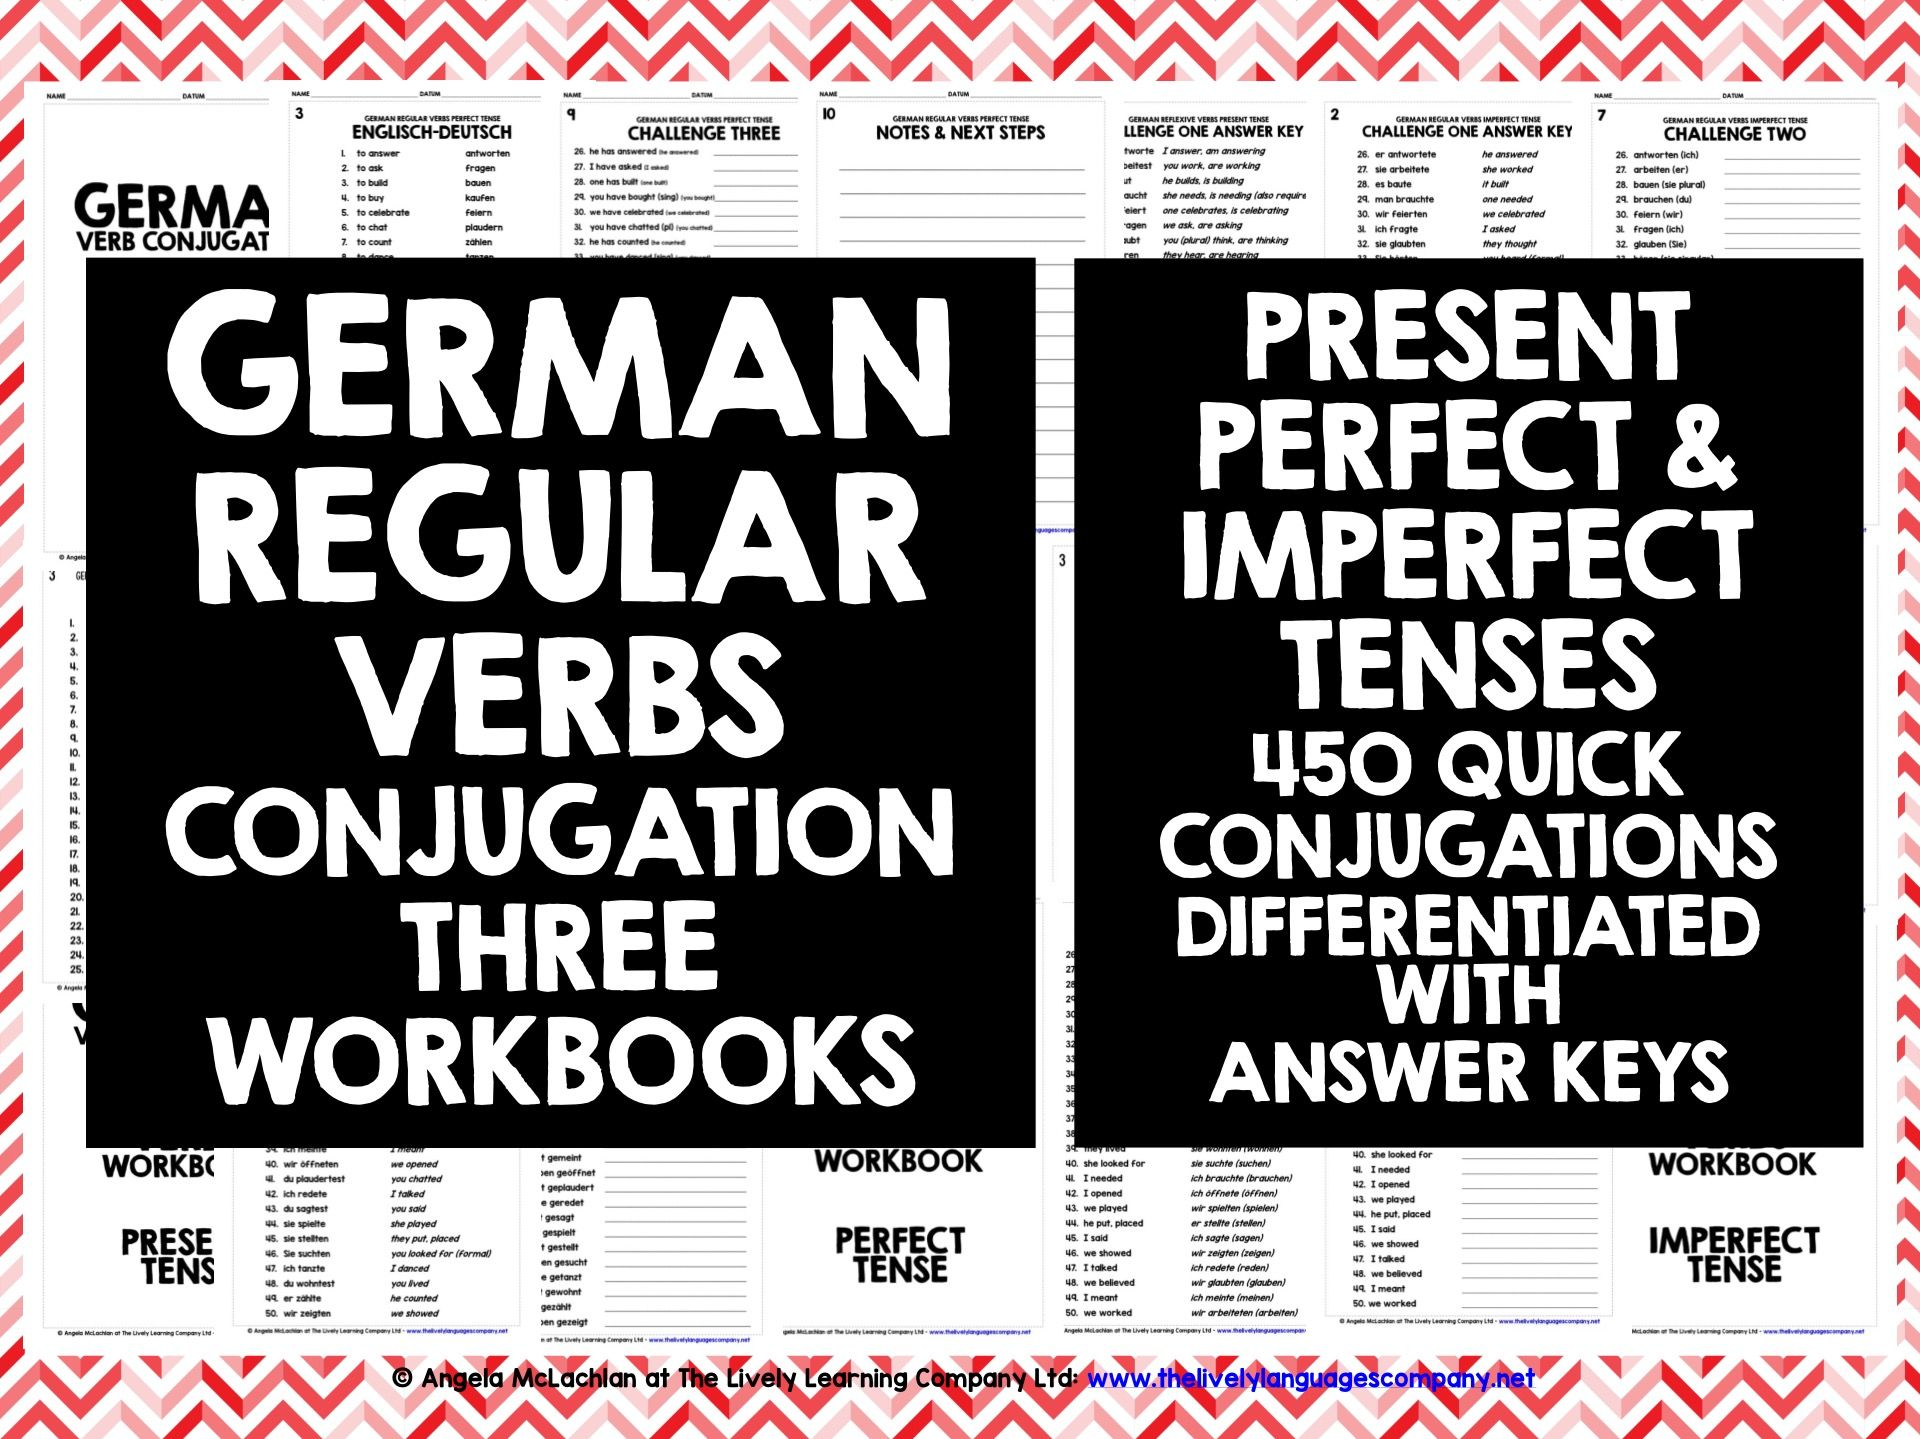 GERMAN REGULAR VERBS